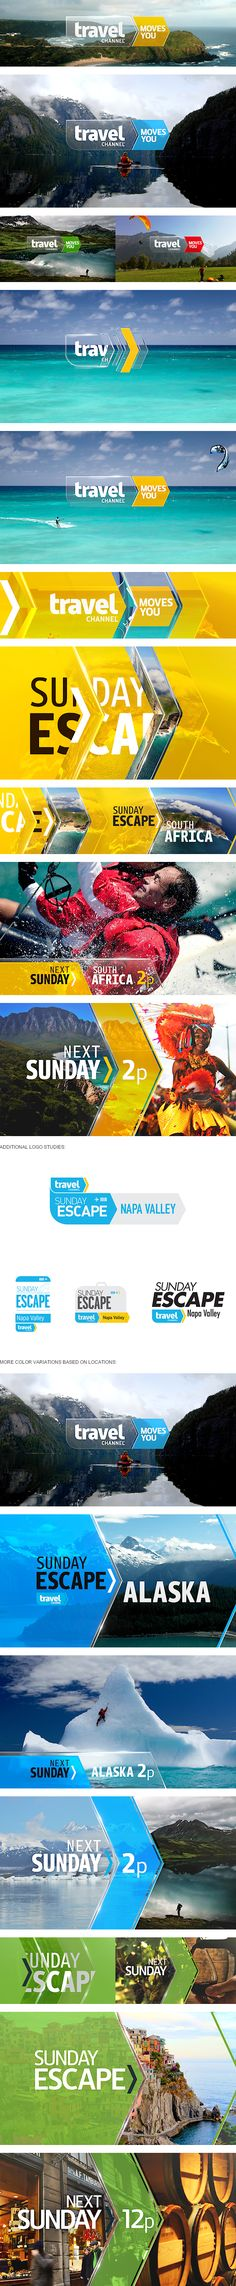 motion graphics/ storyboards/ styleframes | Travel Channel — Sunday Escape